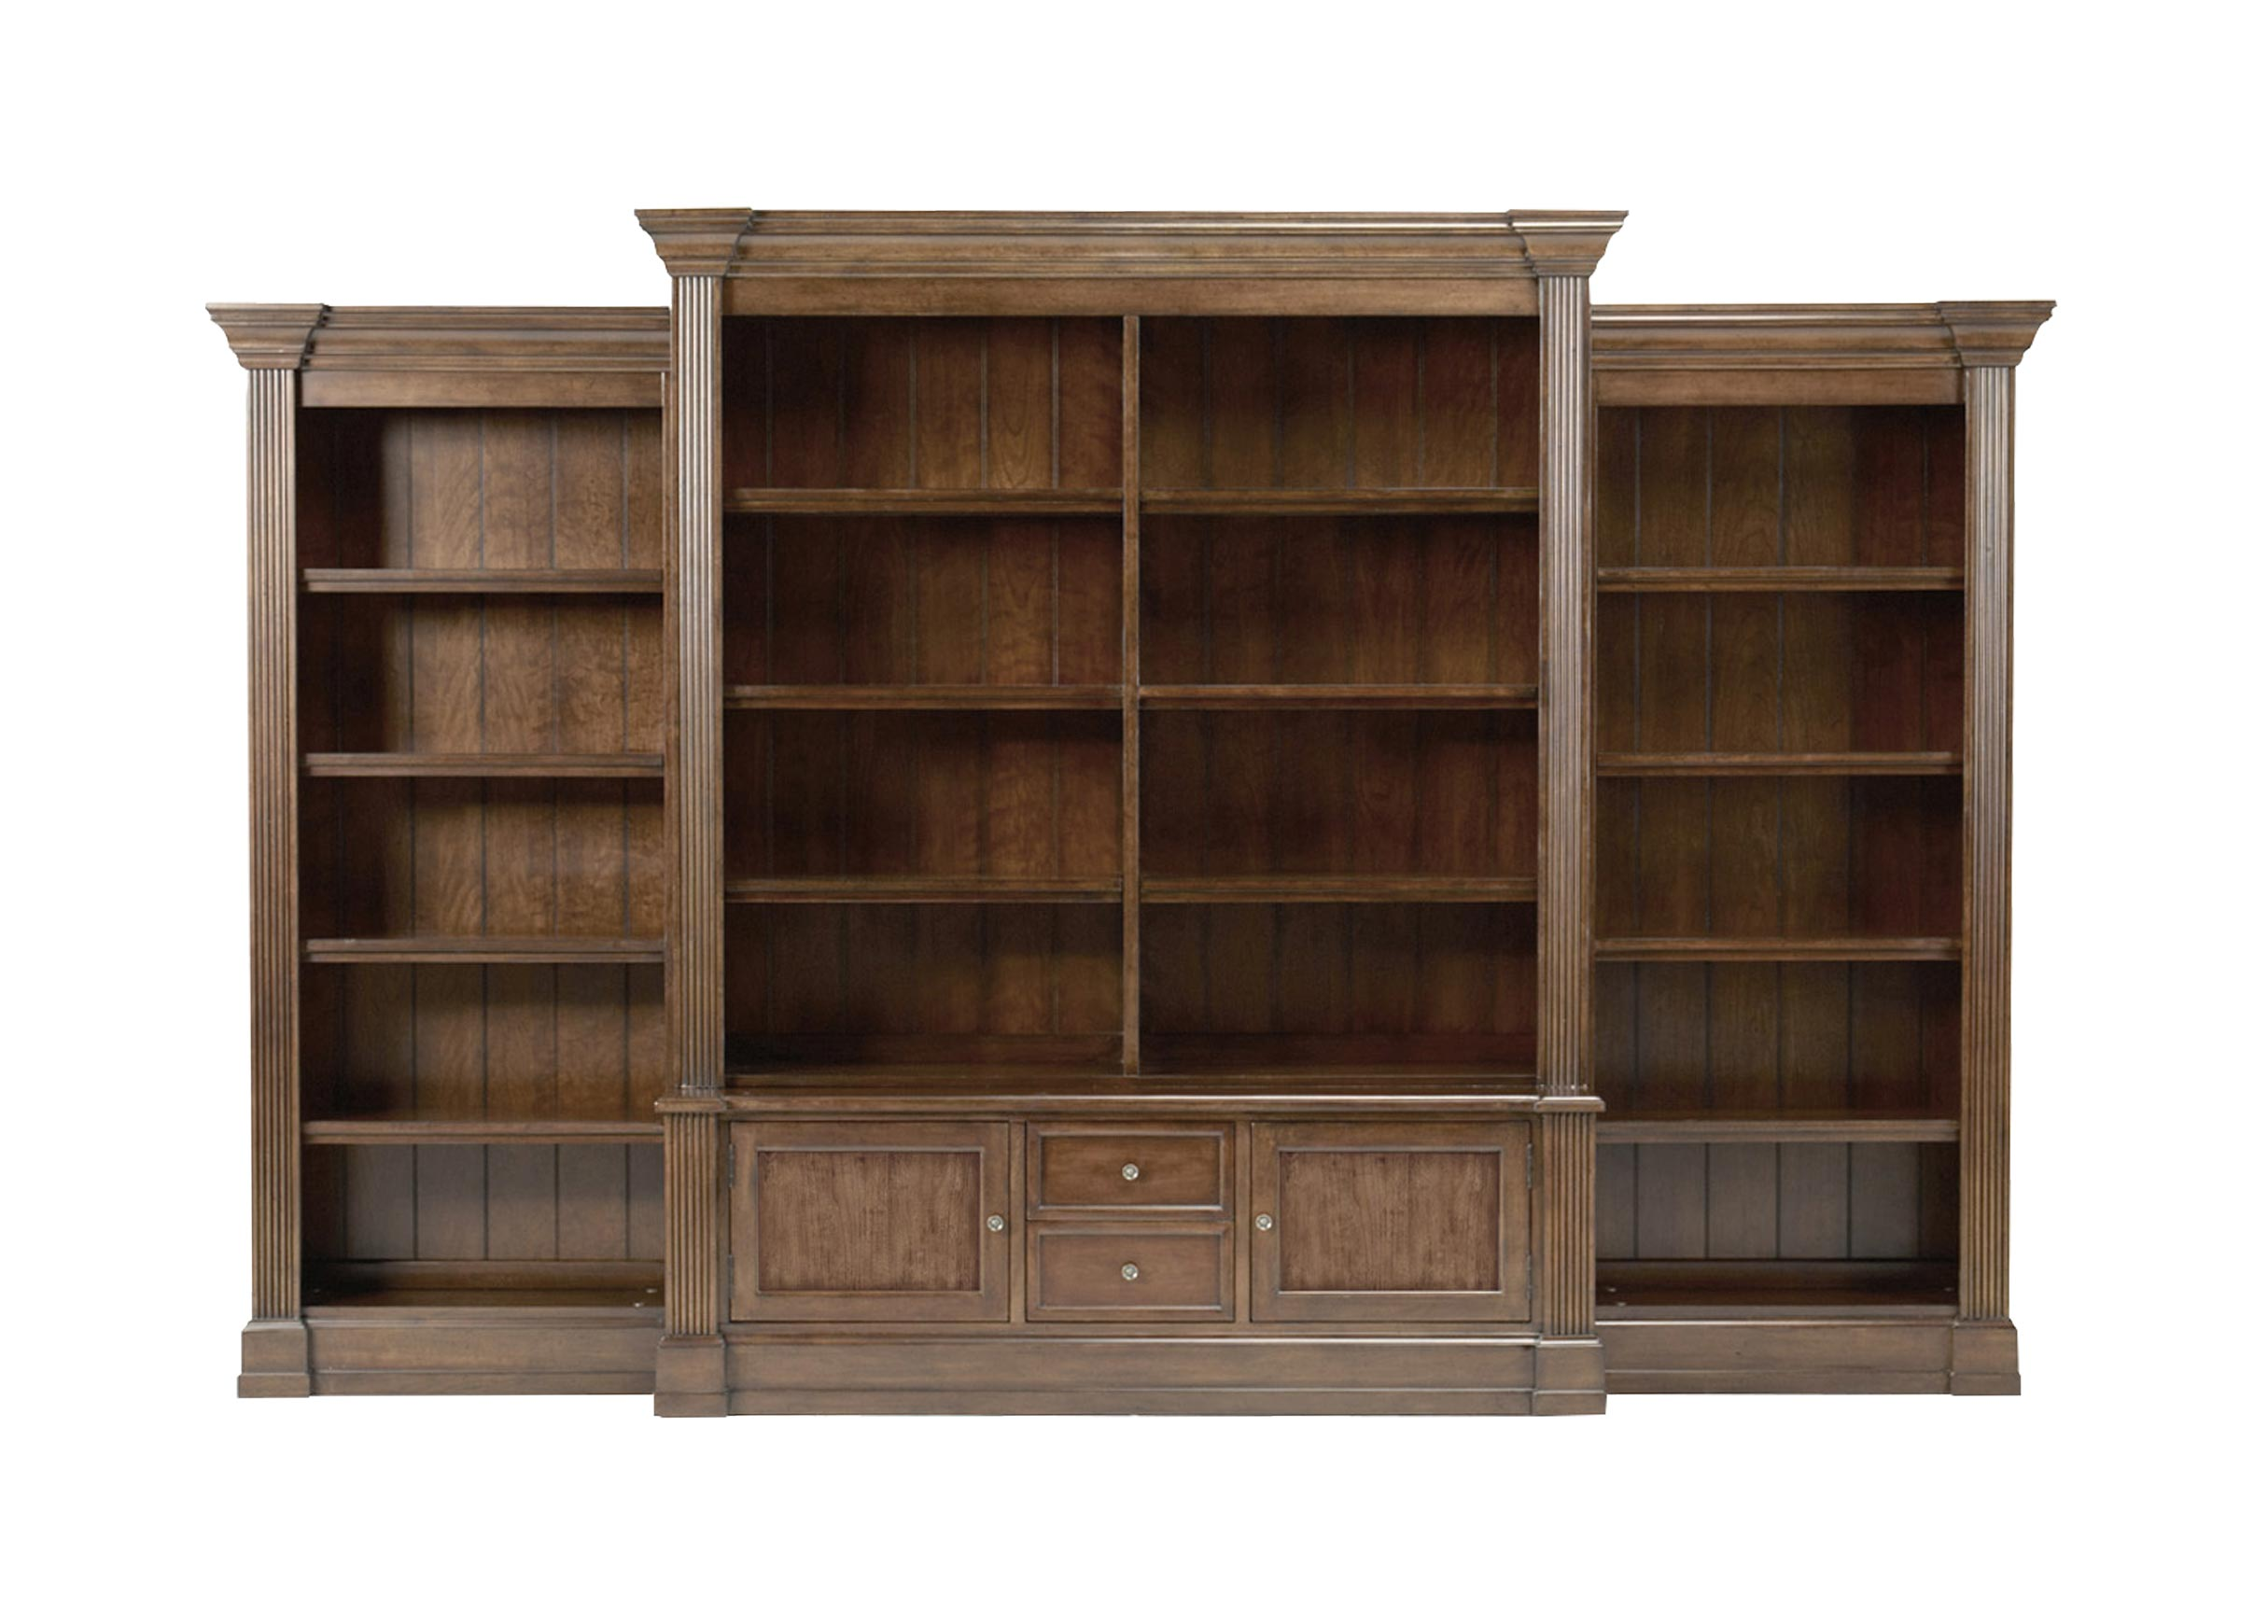 modular bookcases office furniture barrister lizell system book s liz bookcase storage